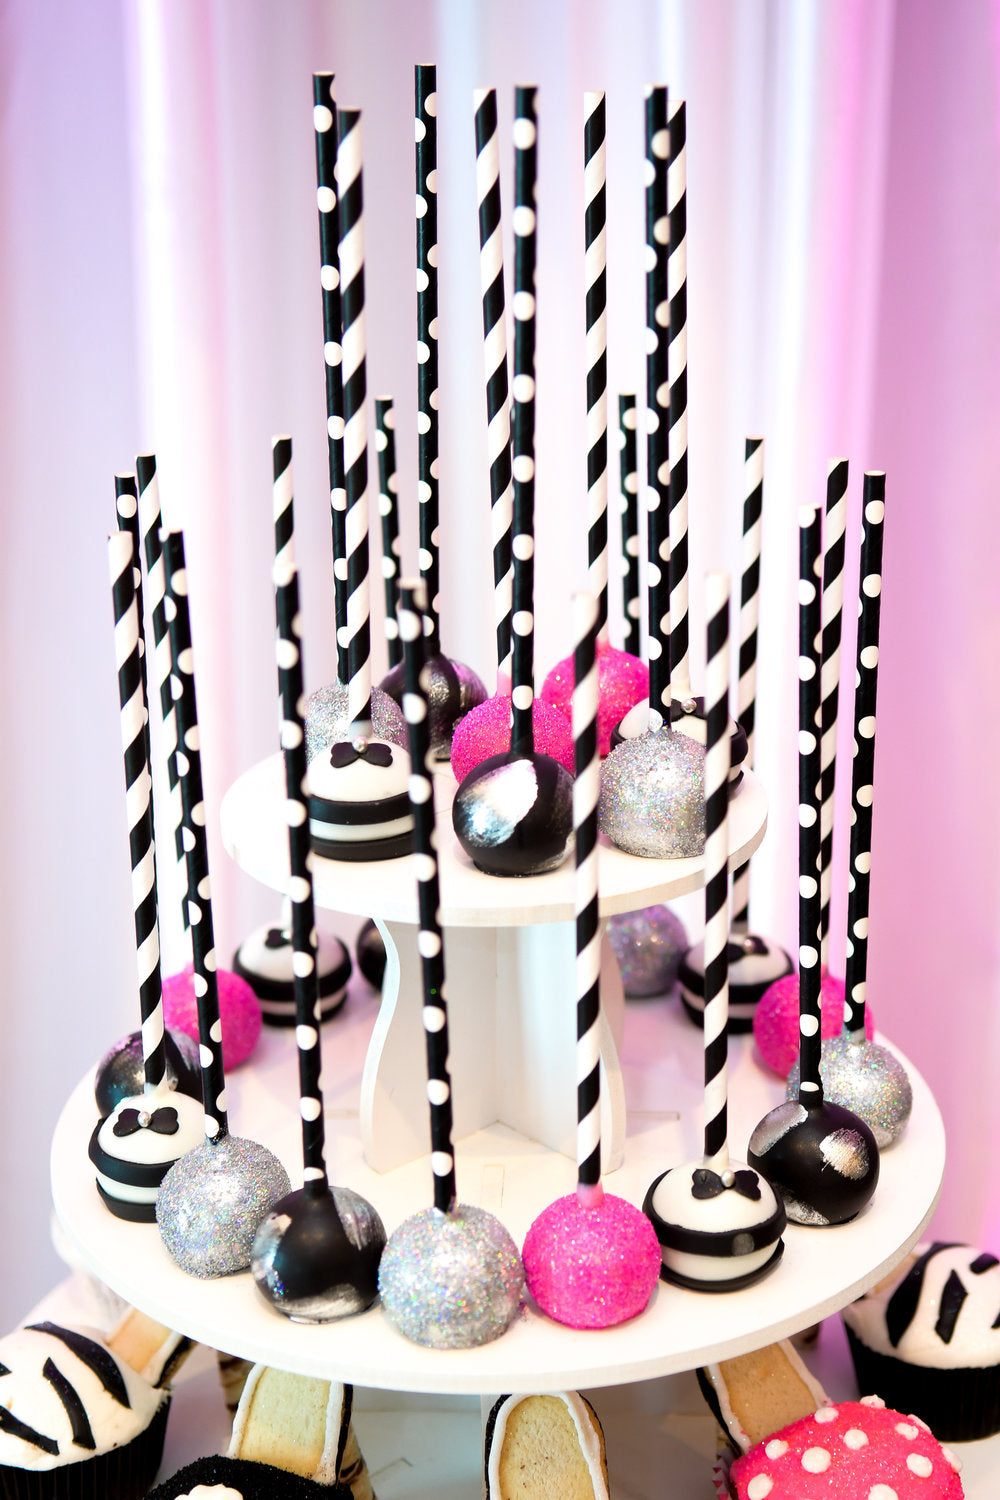 Closeup of cake pops